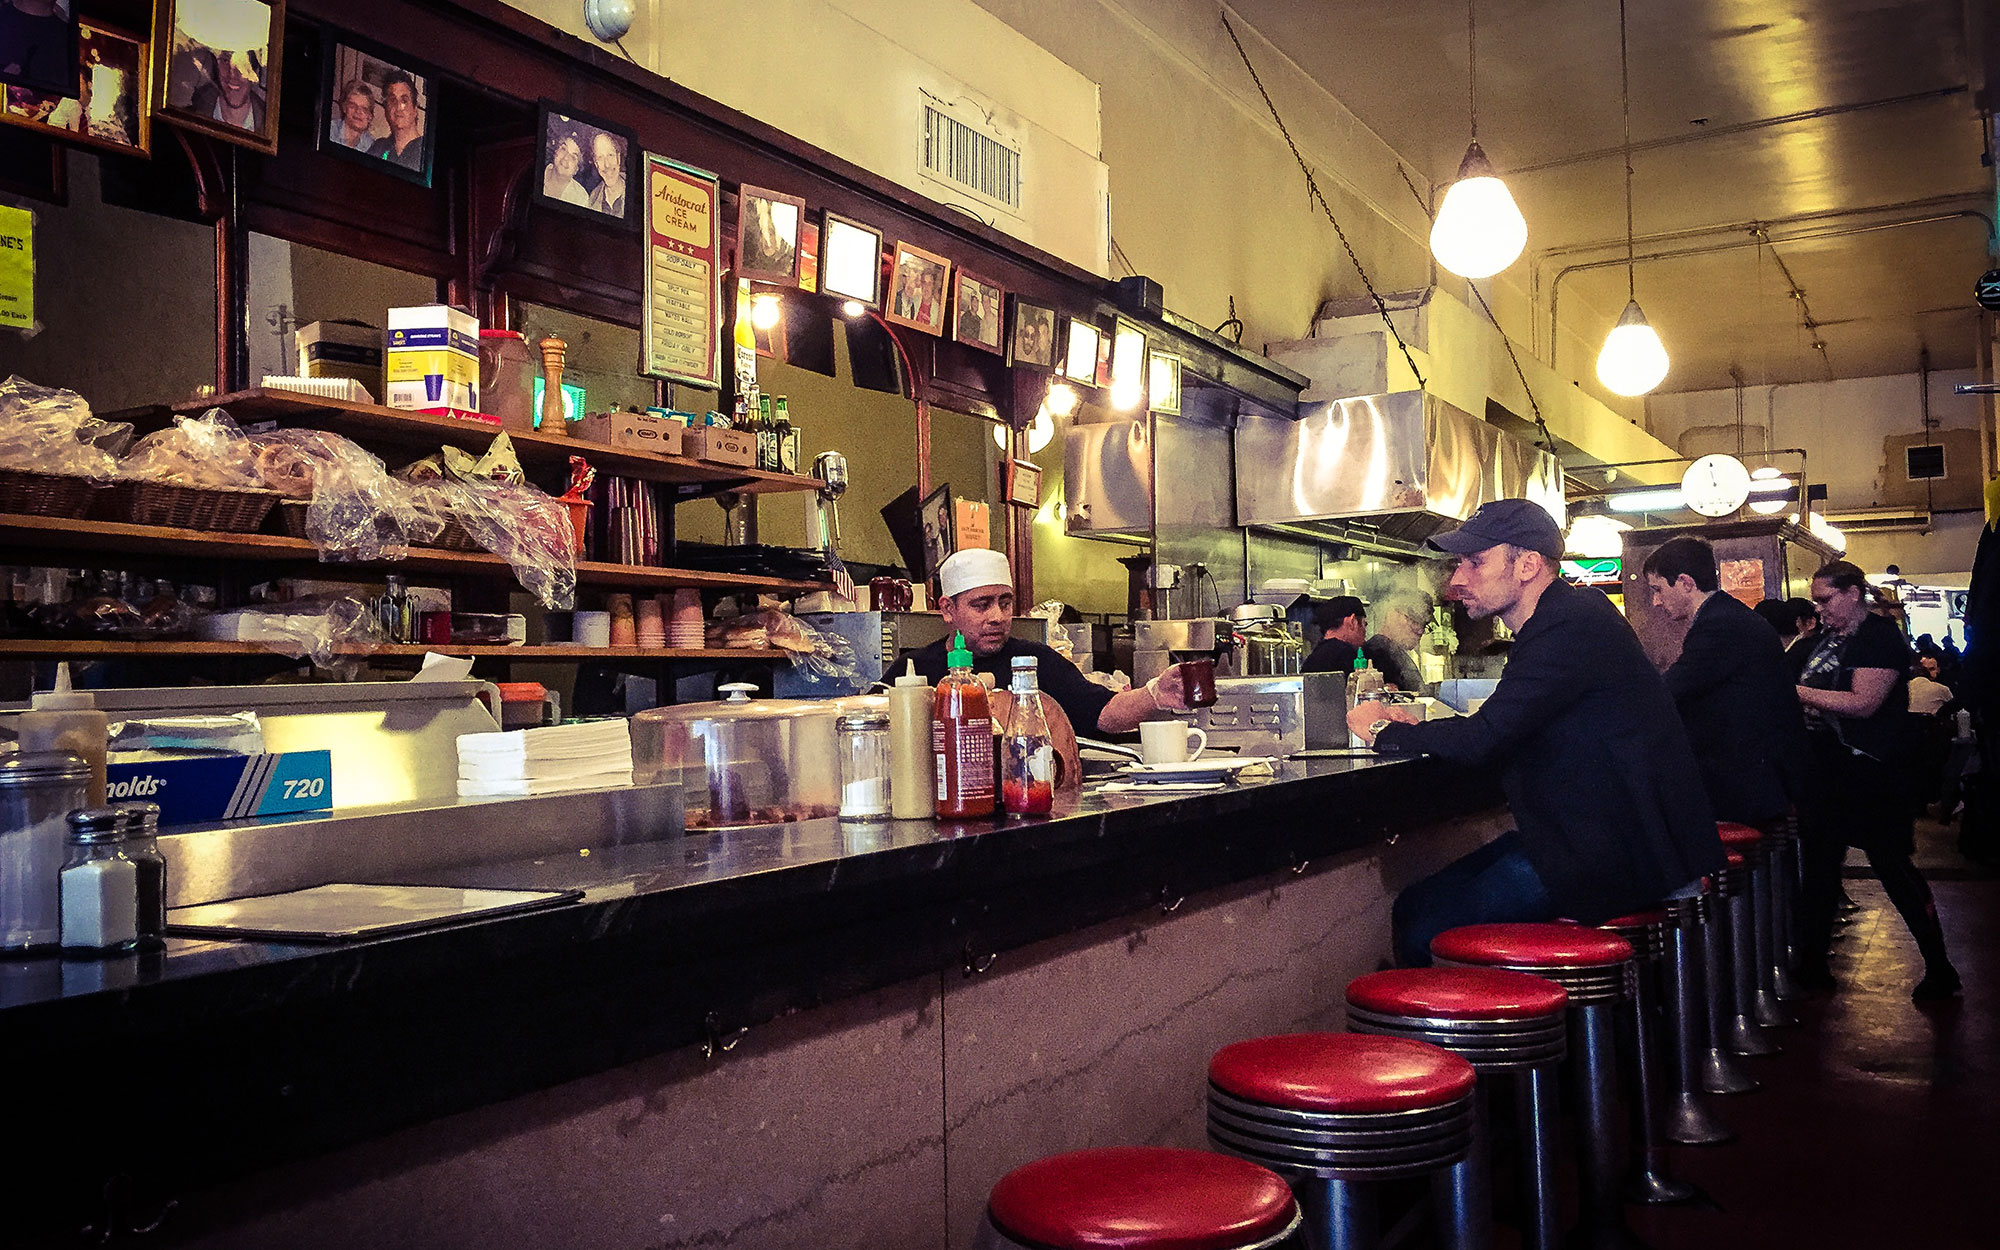 Best Old Restaurants and Bars in NYC: Eisenberg's Sandwich Shop